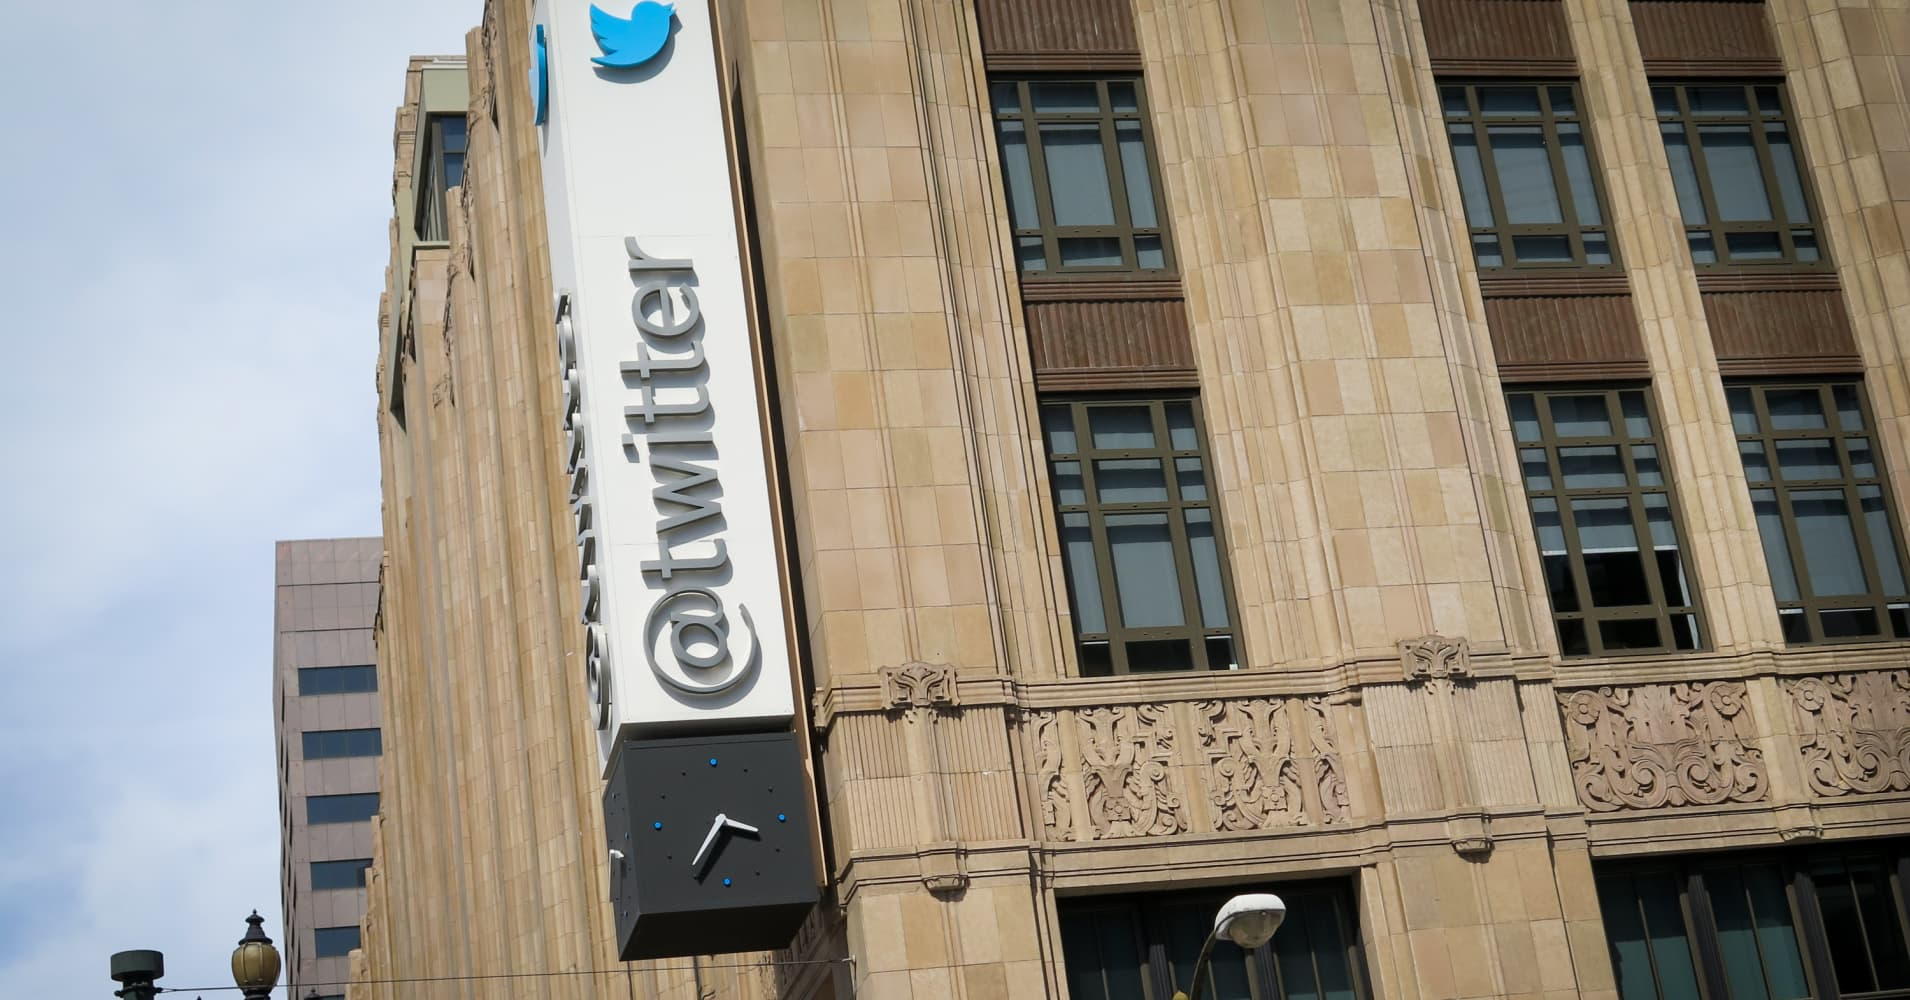 Twitter is about to pass a historic milestone